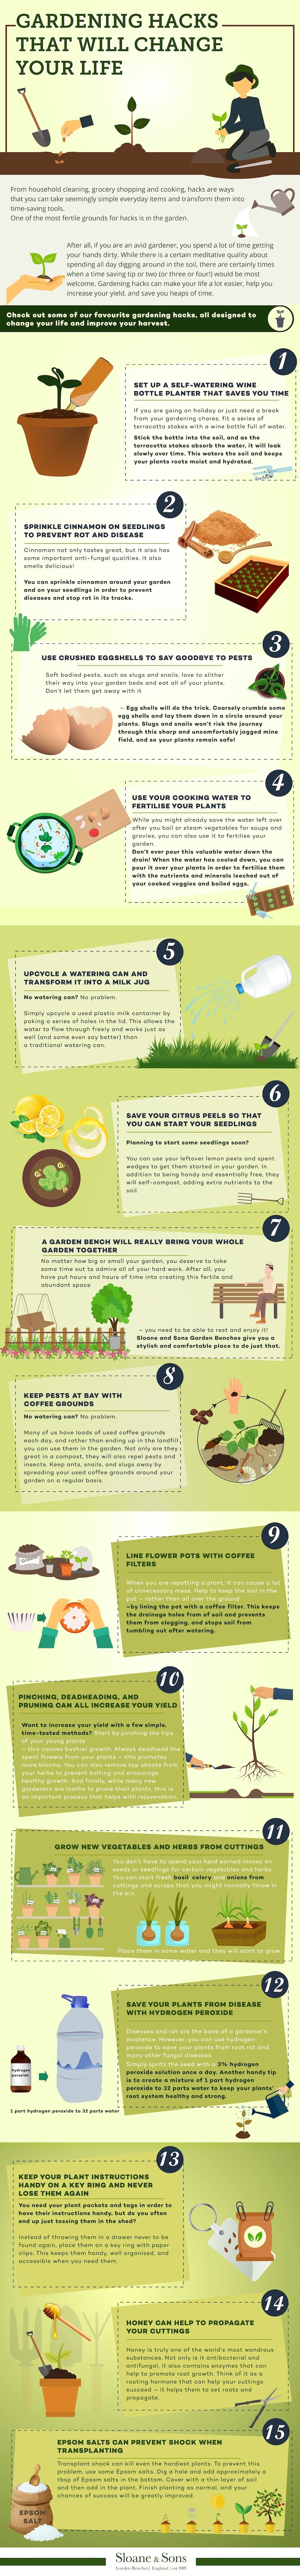 Gardening Hacks That Will Change Your Life Infographic